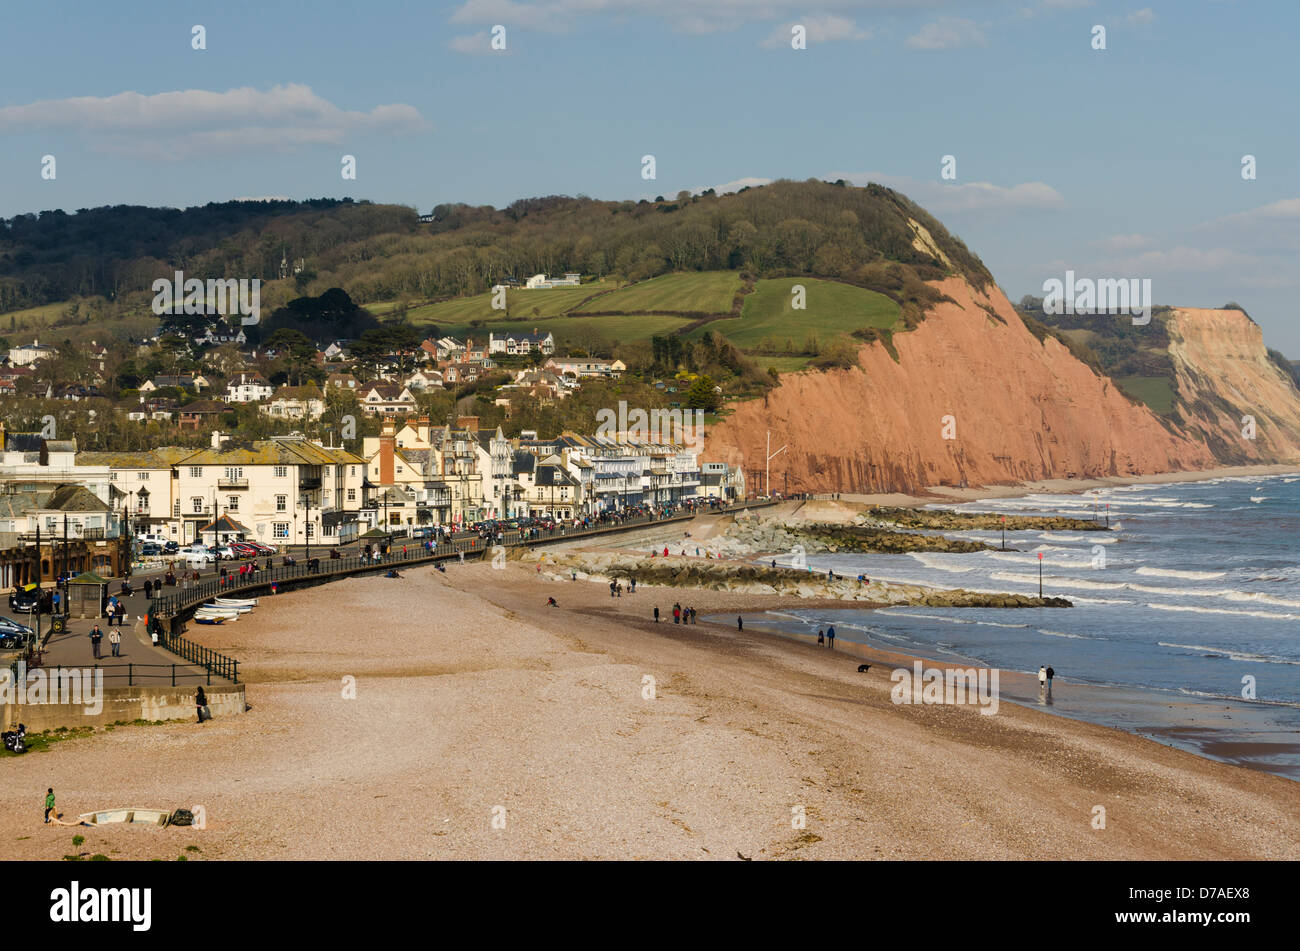 A view along Sidmouth seafront showing the beach and promenade on a sunny day. - Stock Image